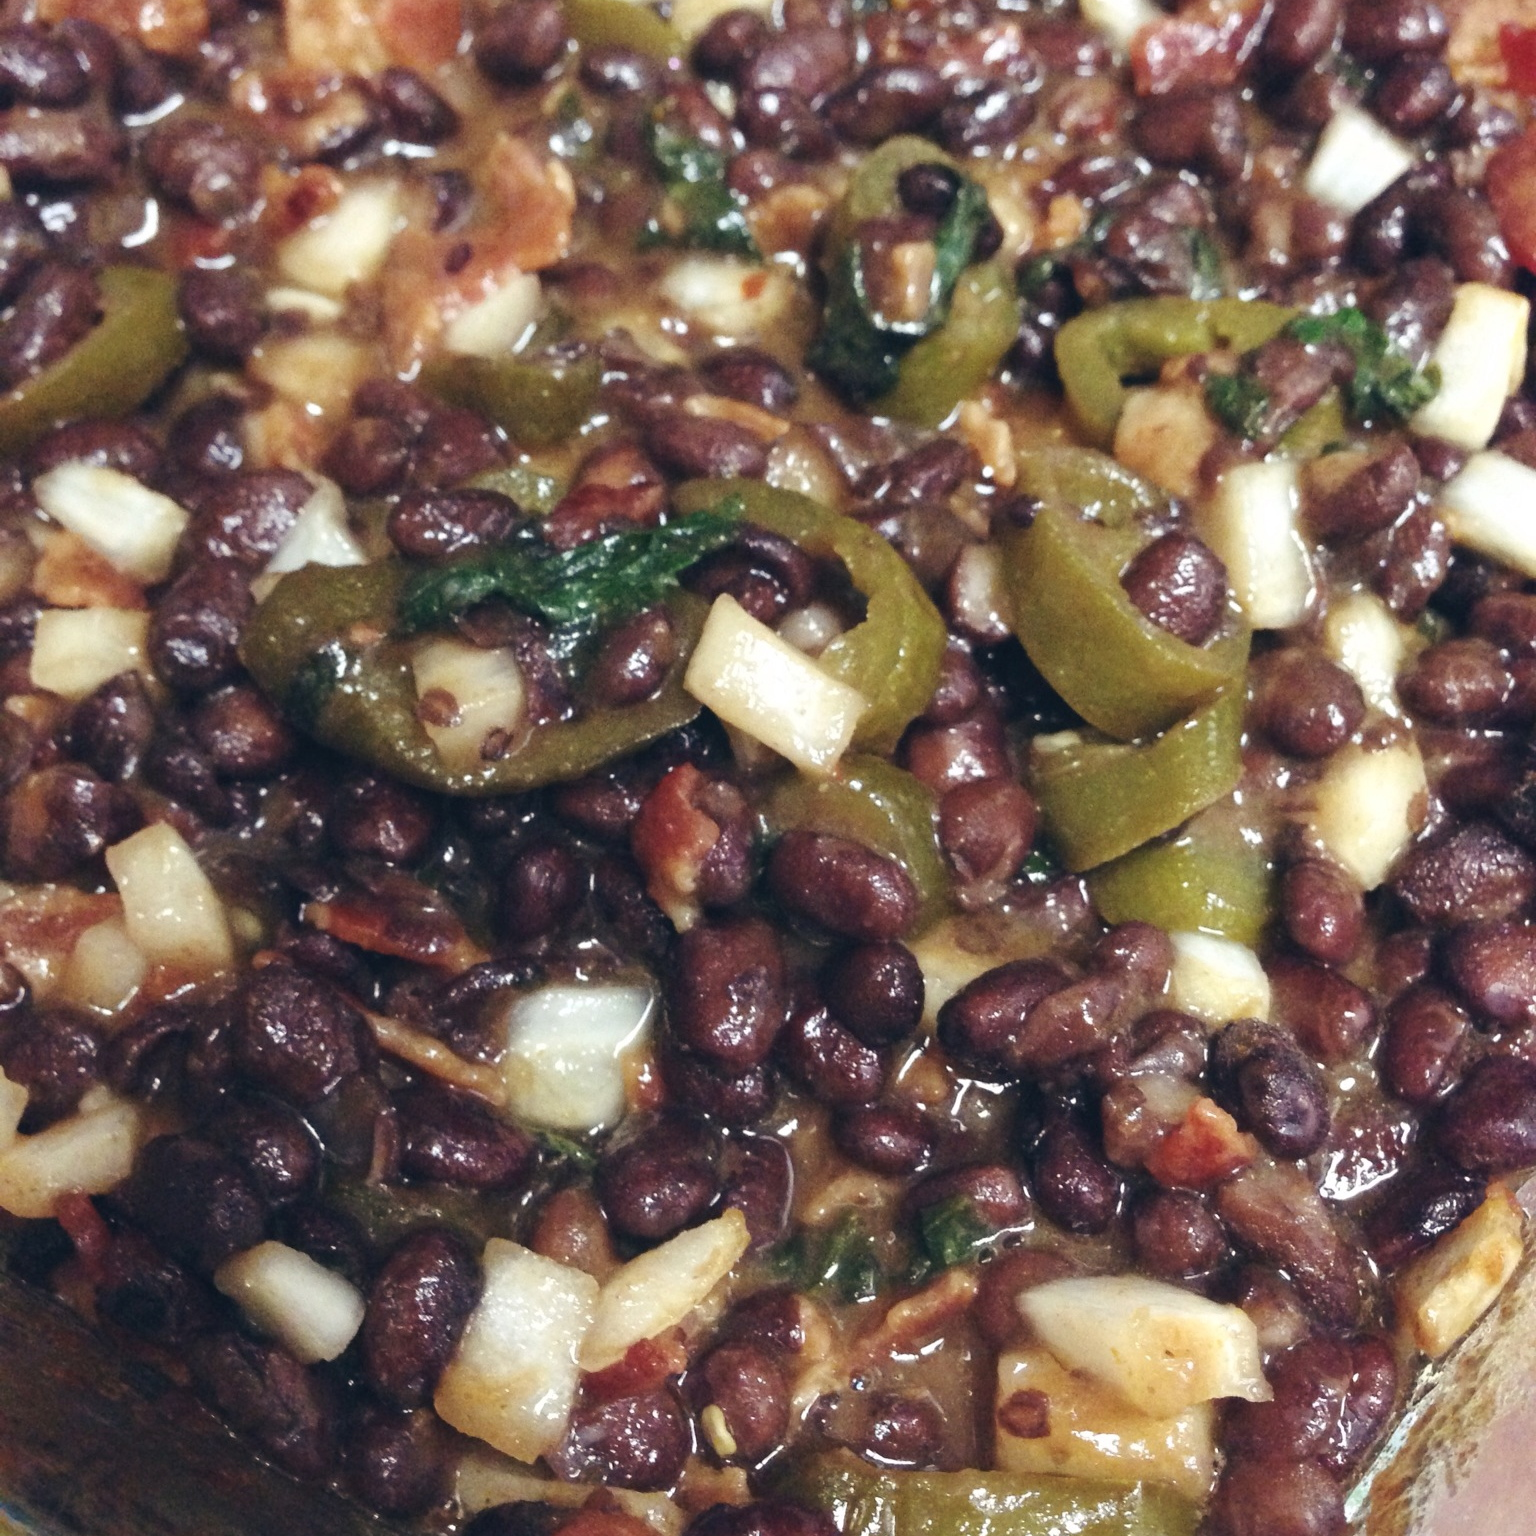 ... beans to your diet. Serve these Spicy Baked Beans along with fajitas